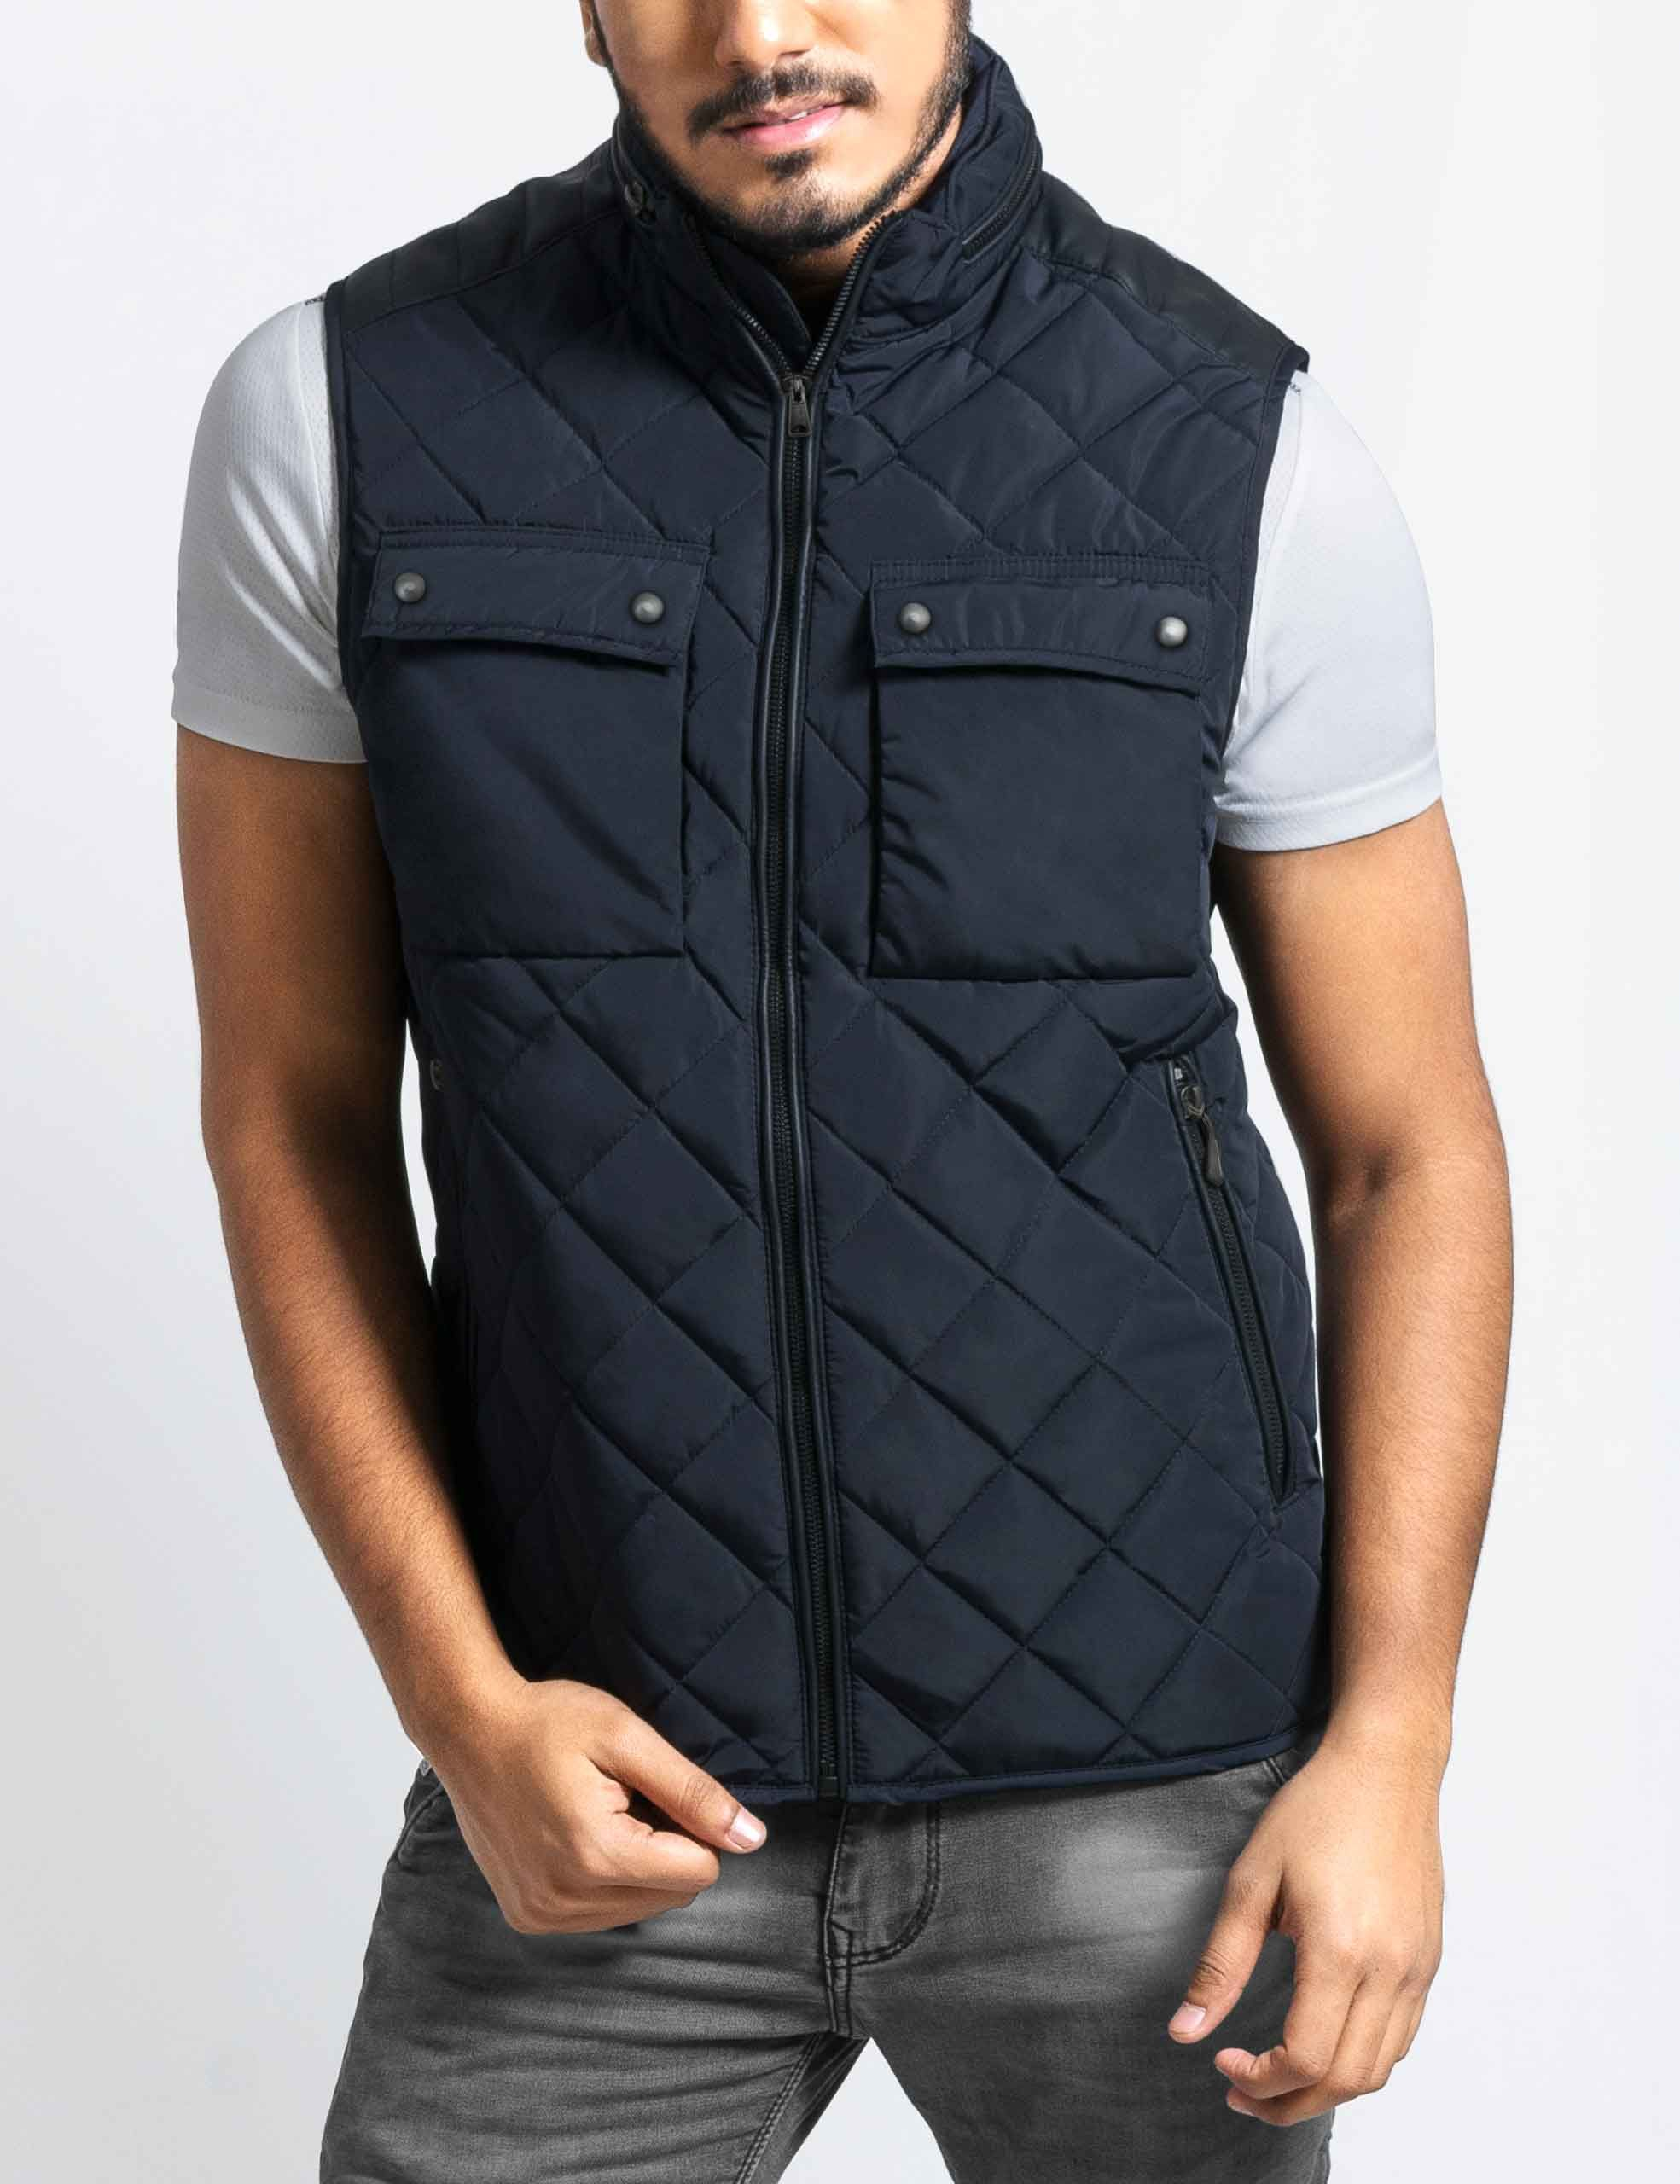 men s quilted vest wholesale denim wholesale clothing on men s insulated coveralls cheap id=52721